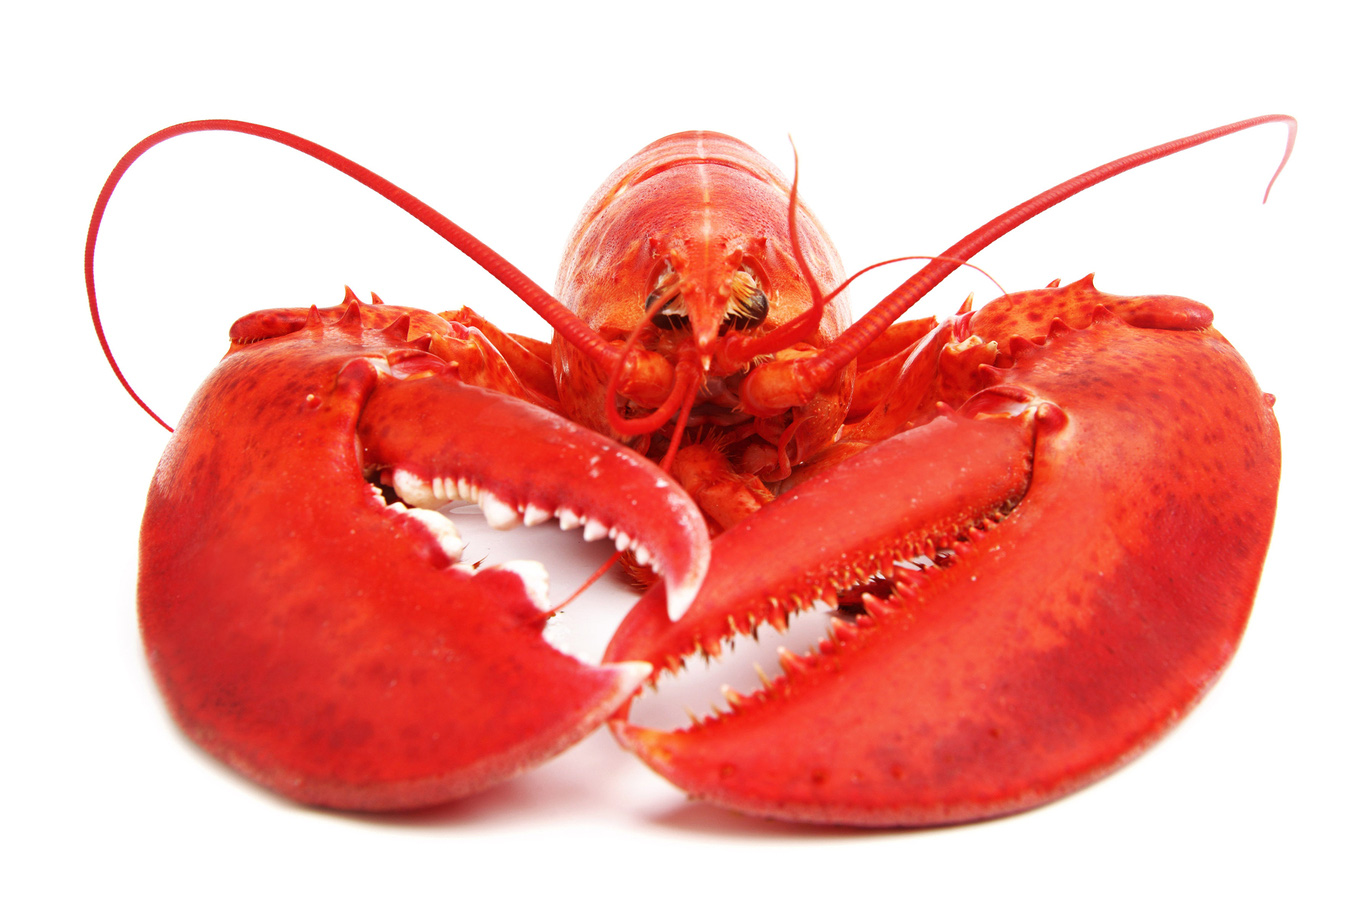 19b00f4.png - Lobster HD PNG